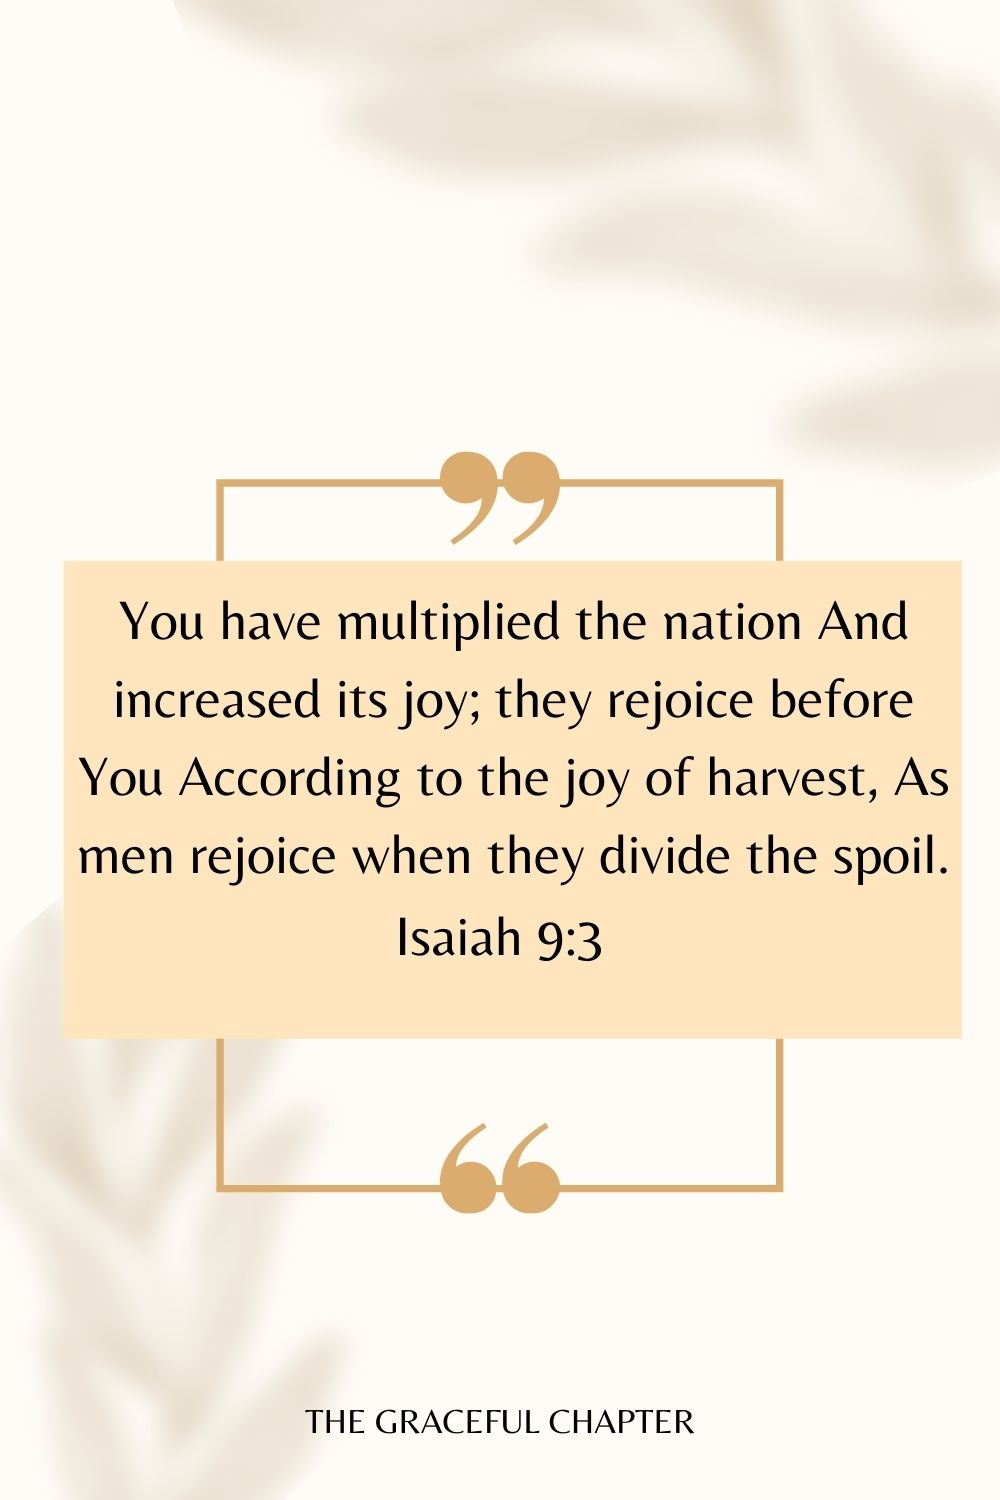 You have multiplied the nation And increased its joy; They rejoice before You According to the joy of harvest, As men rejoice when they divide the spoil. Isaiah 9:3